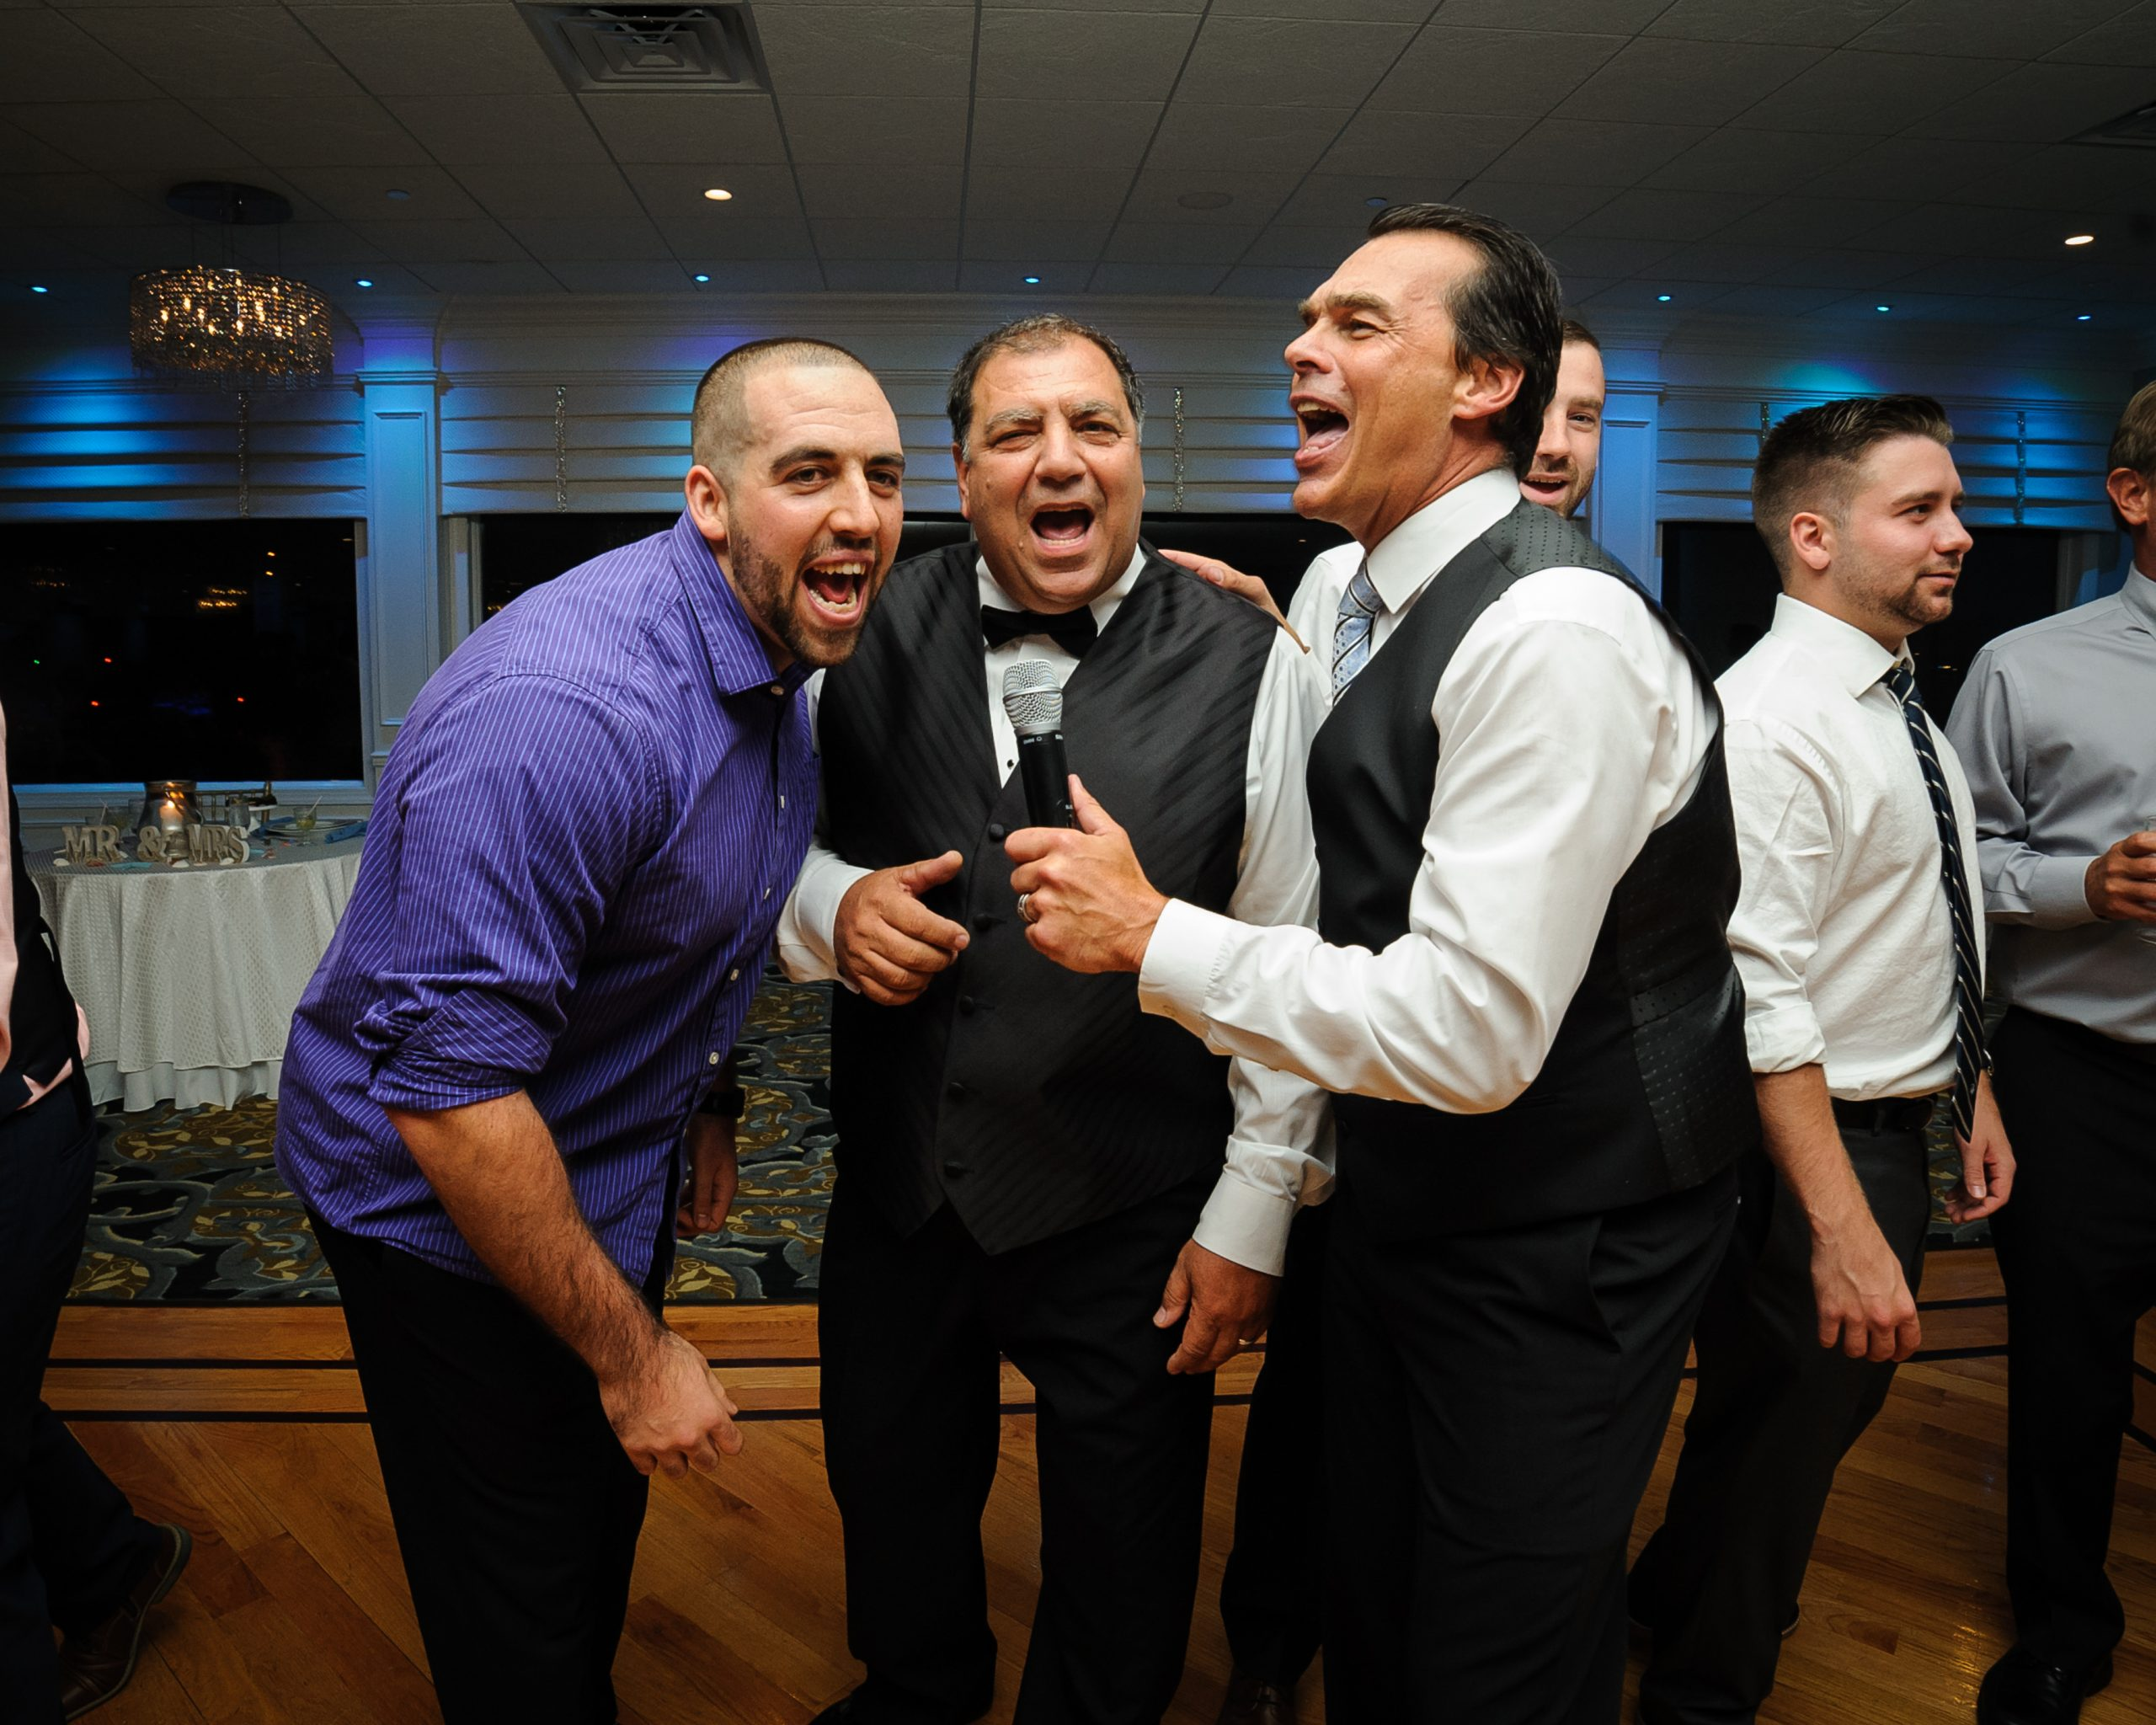 EliteEntertainmentl_NJWedding_CrystalPoint_EliteDigitalImages